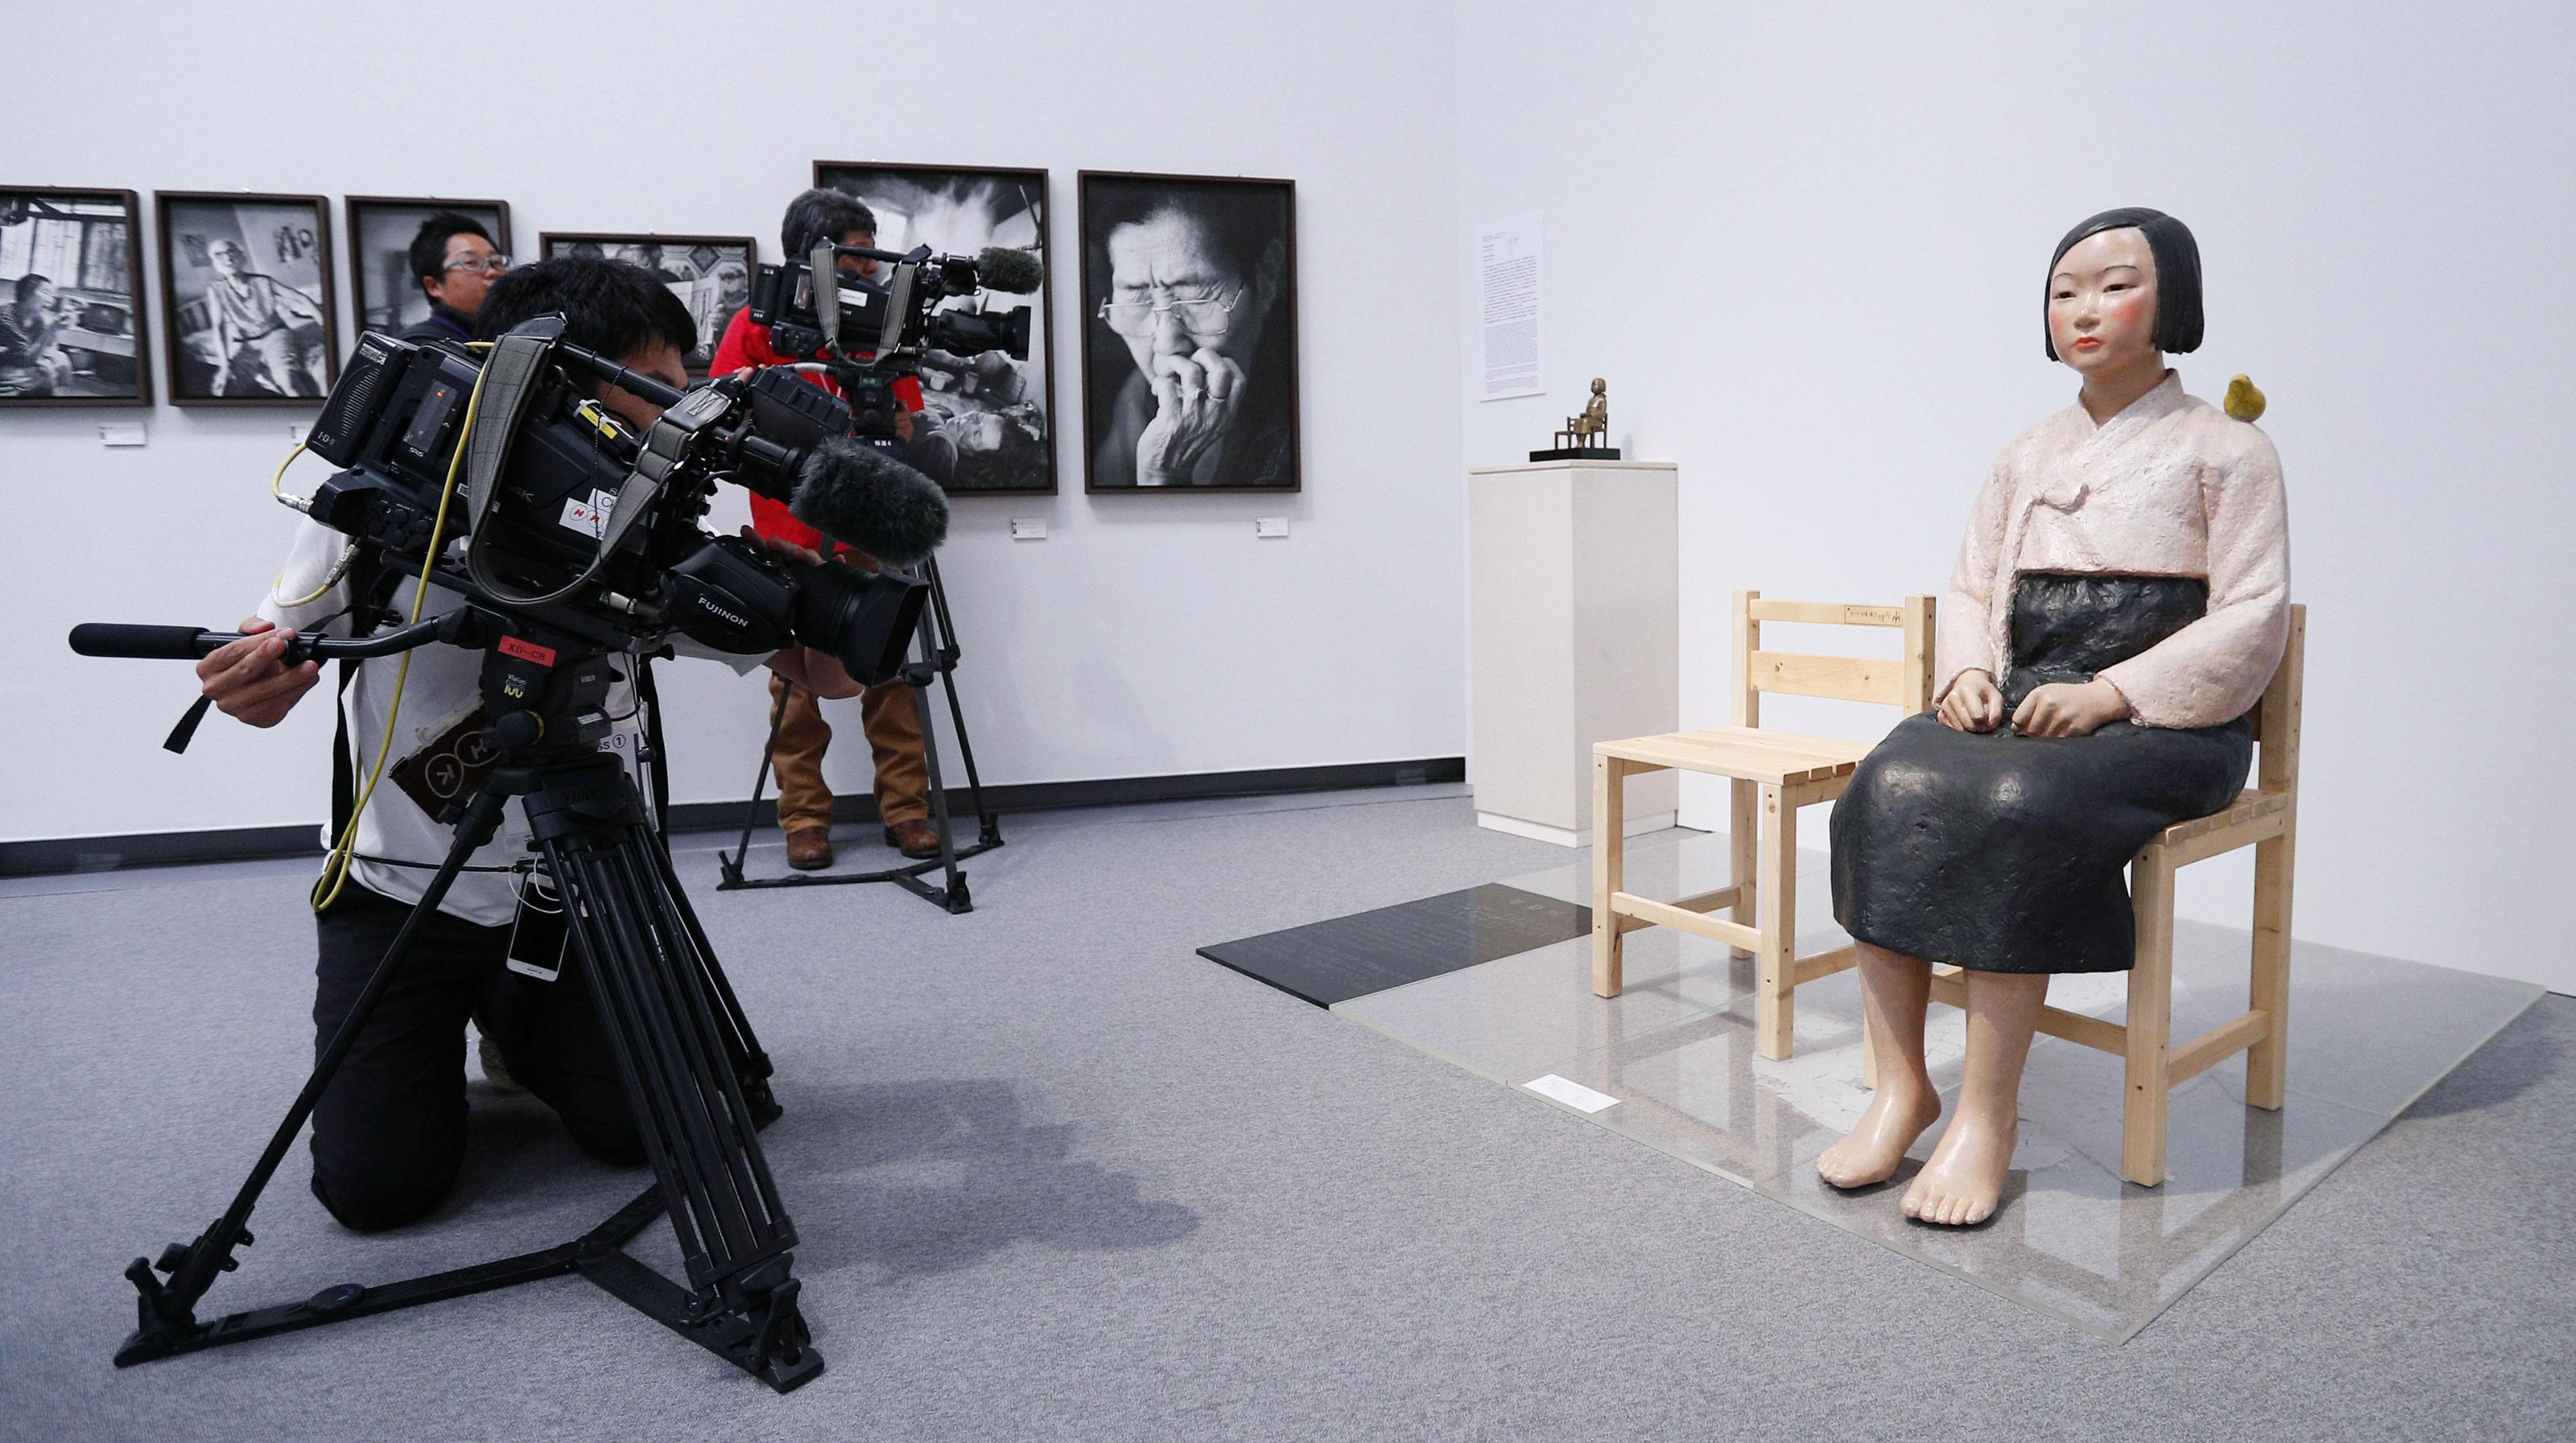 A section of the Aichi Triennale 2019 art festival in Nagoya featuring the 'Statue of a Girl of Peace' symbolizing wartime 'comfort women' was shut down late Saturday amid heated Japan-South Korea tensions in a move that has stoked freedom of expression concerns. | KYODO